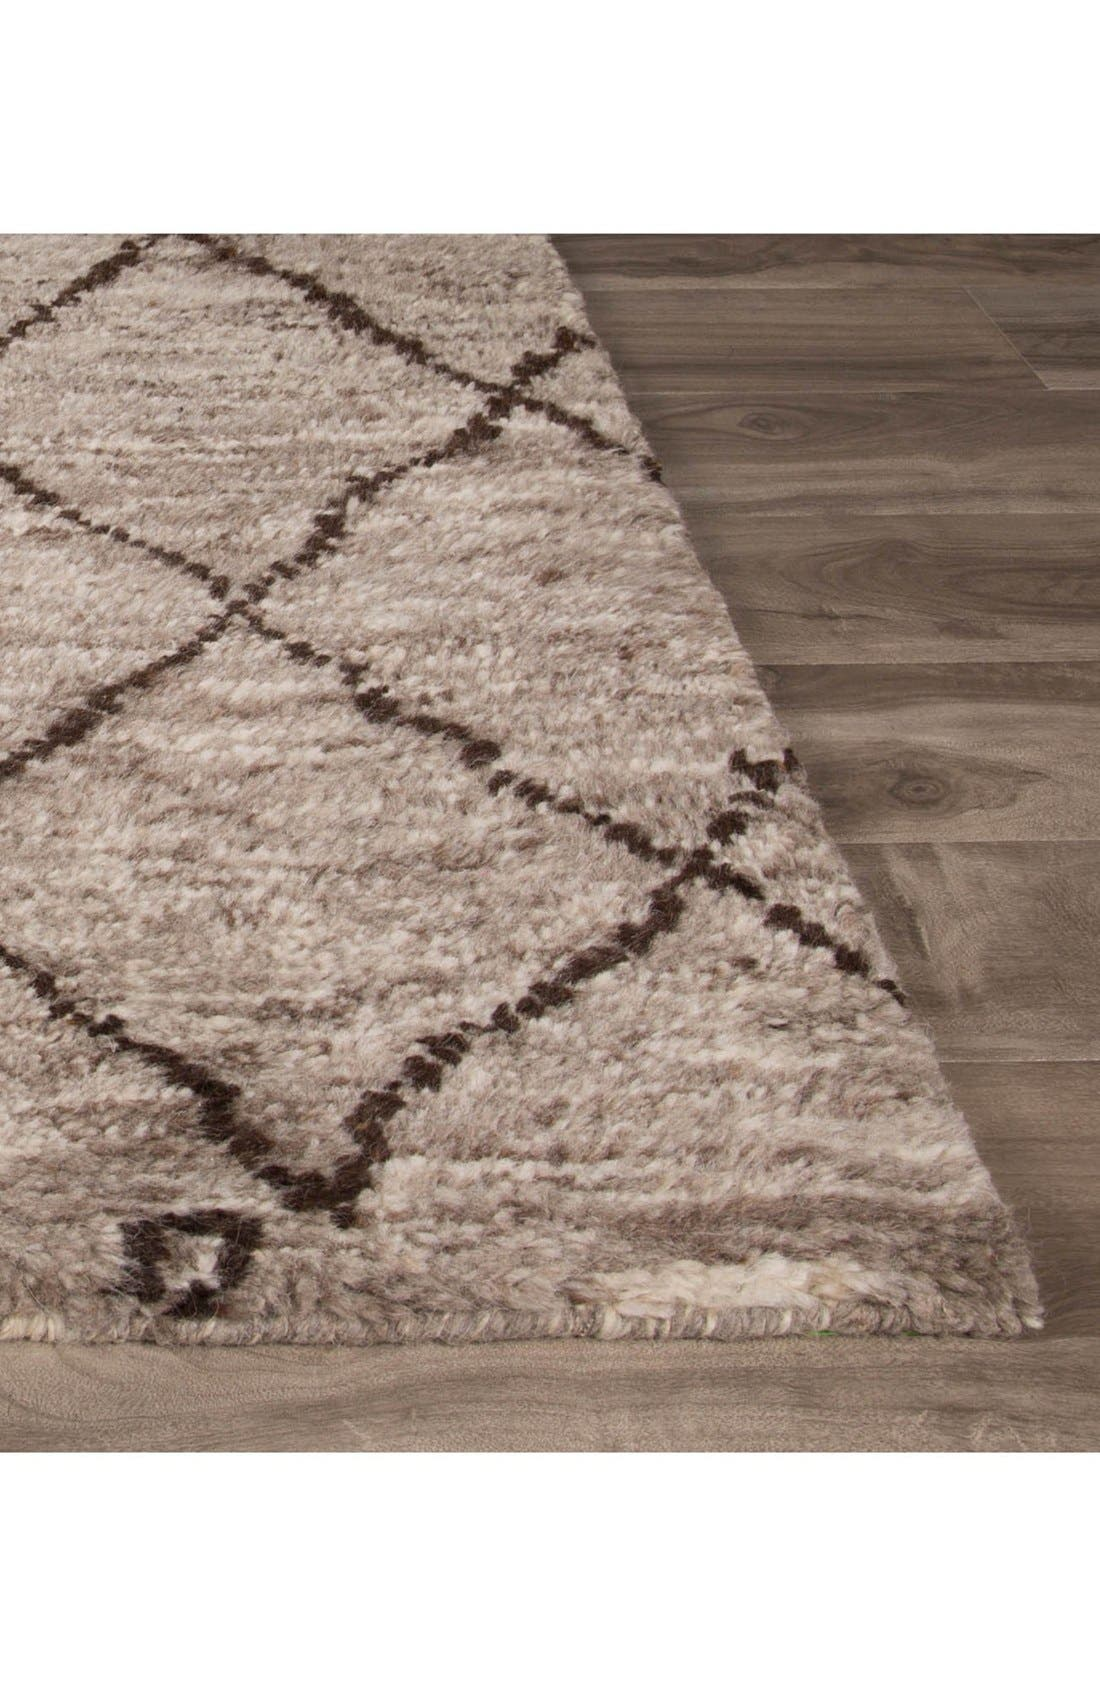 'Zola' Hand Knotted Wool Rug,                             Alternate thumbnail 3, color,                             NATURAL/ BROWN